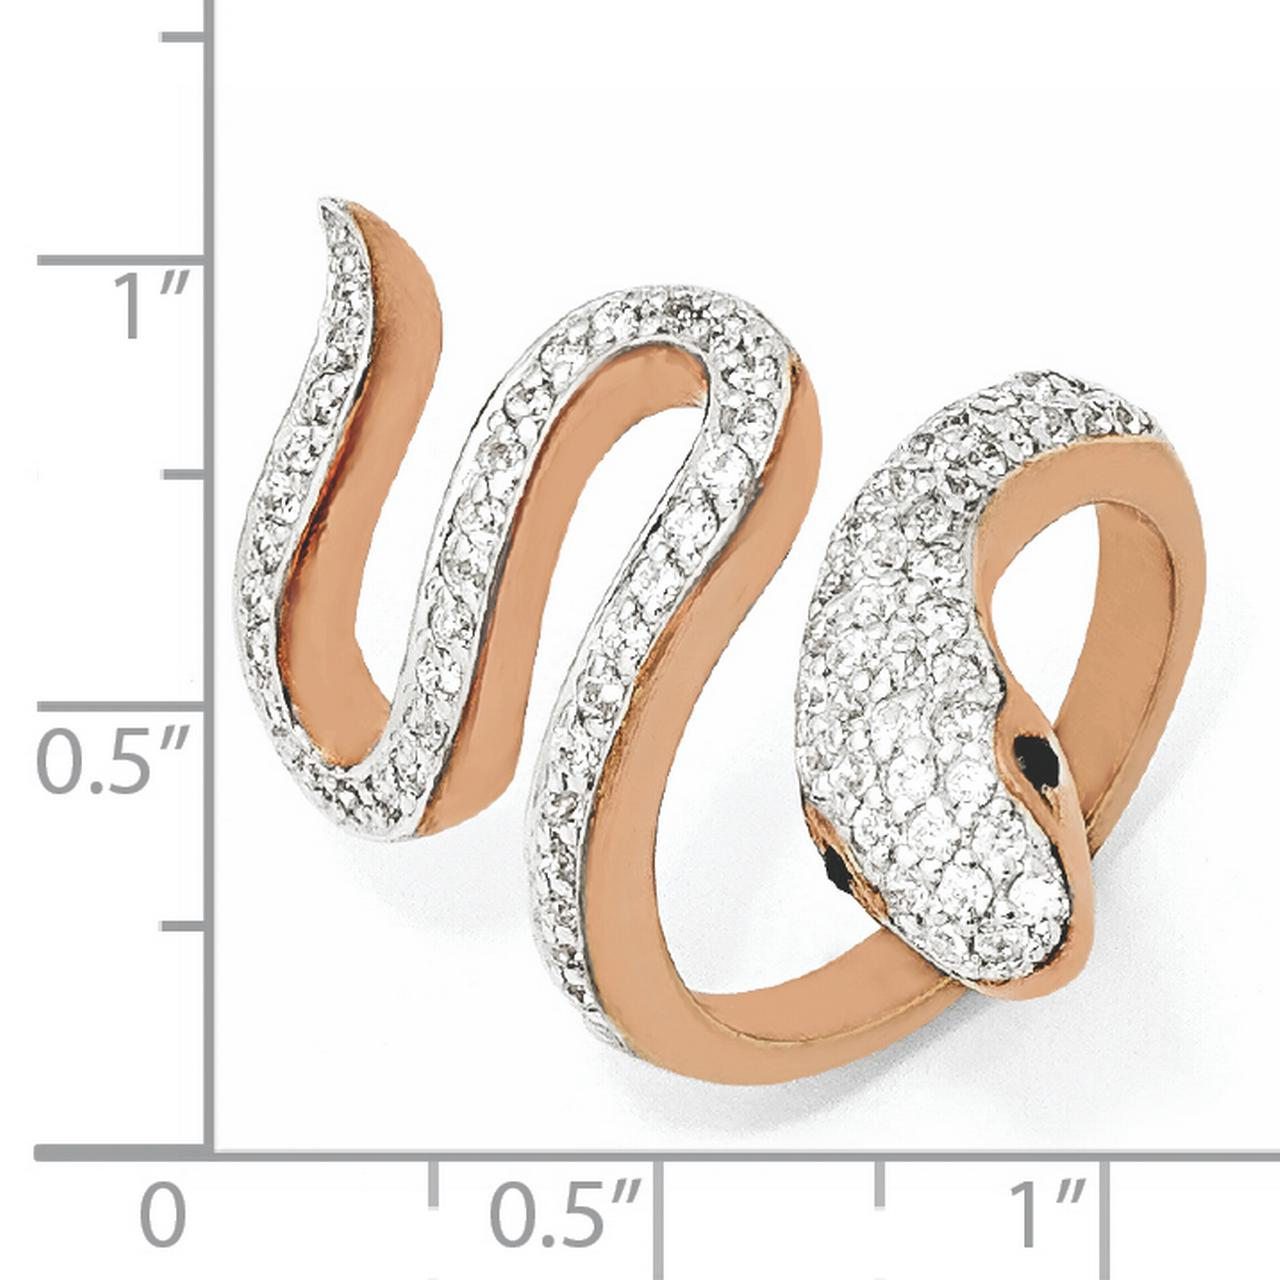 Cheryl M Sterling Silver Rose Gold-Plated Black & White CZ Snake Ring Size 8 - image 2 of 3